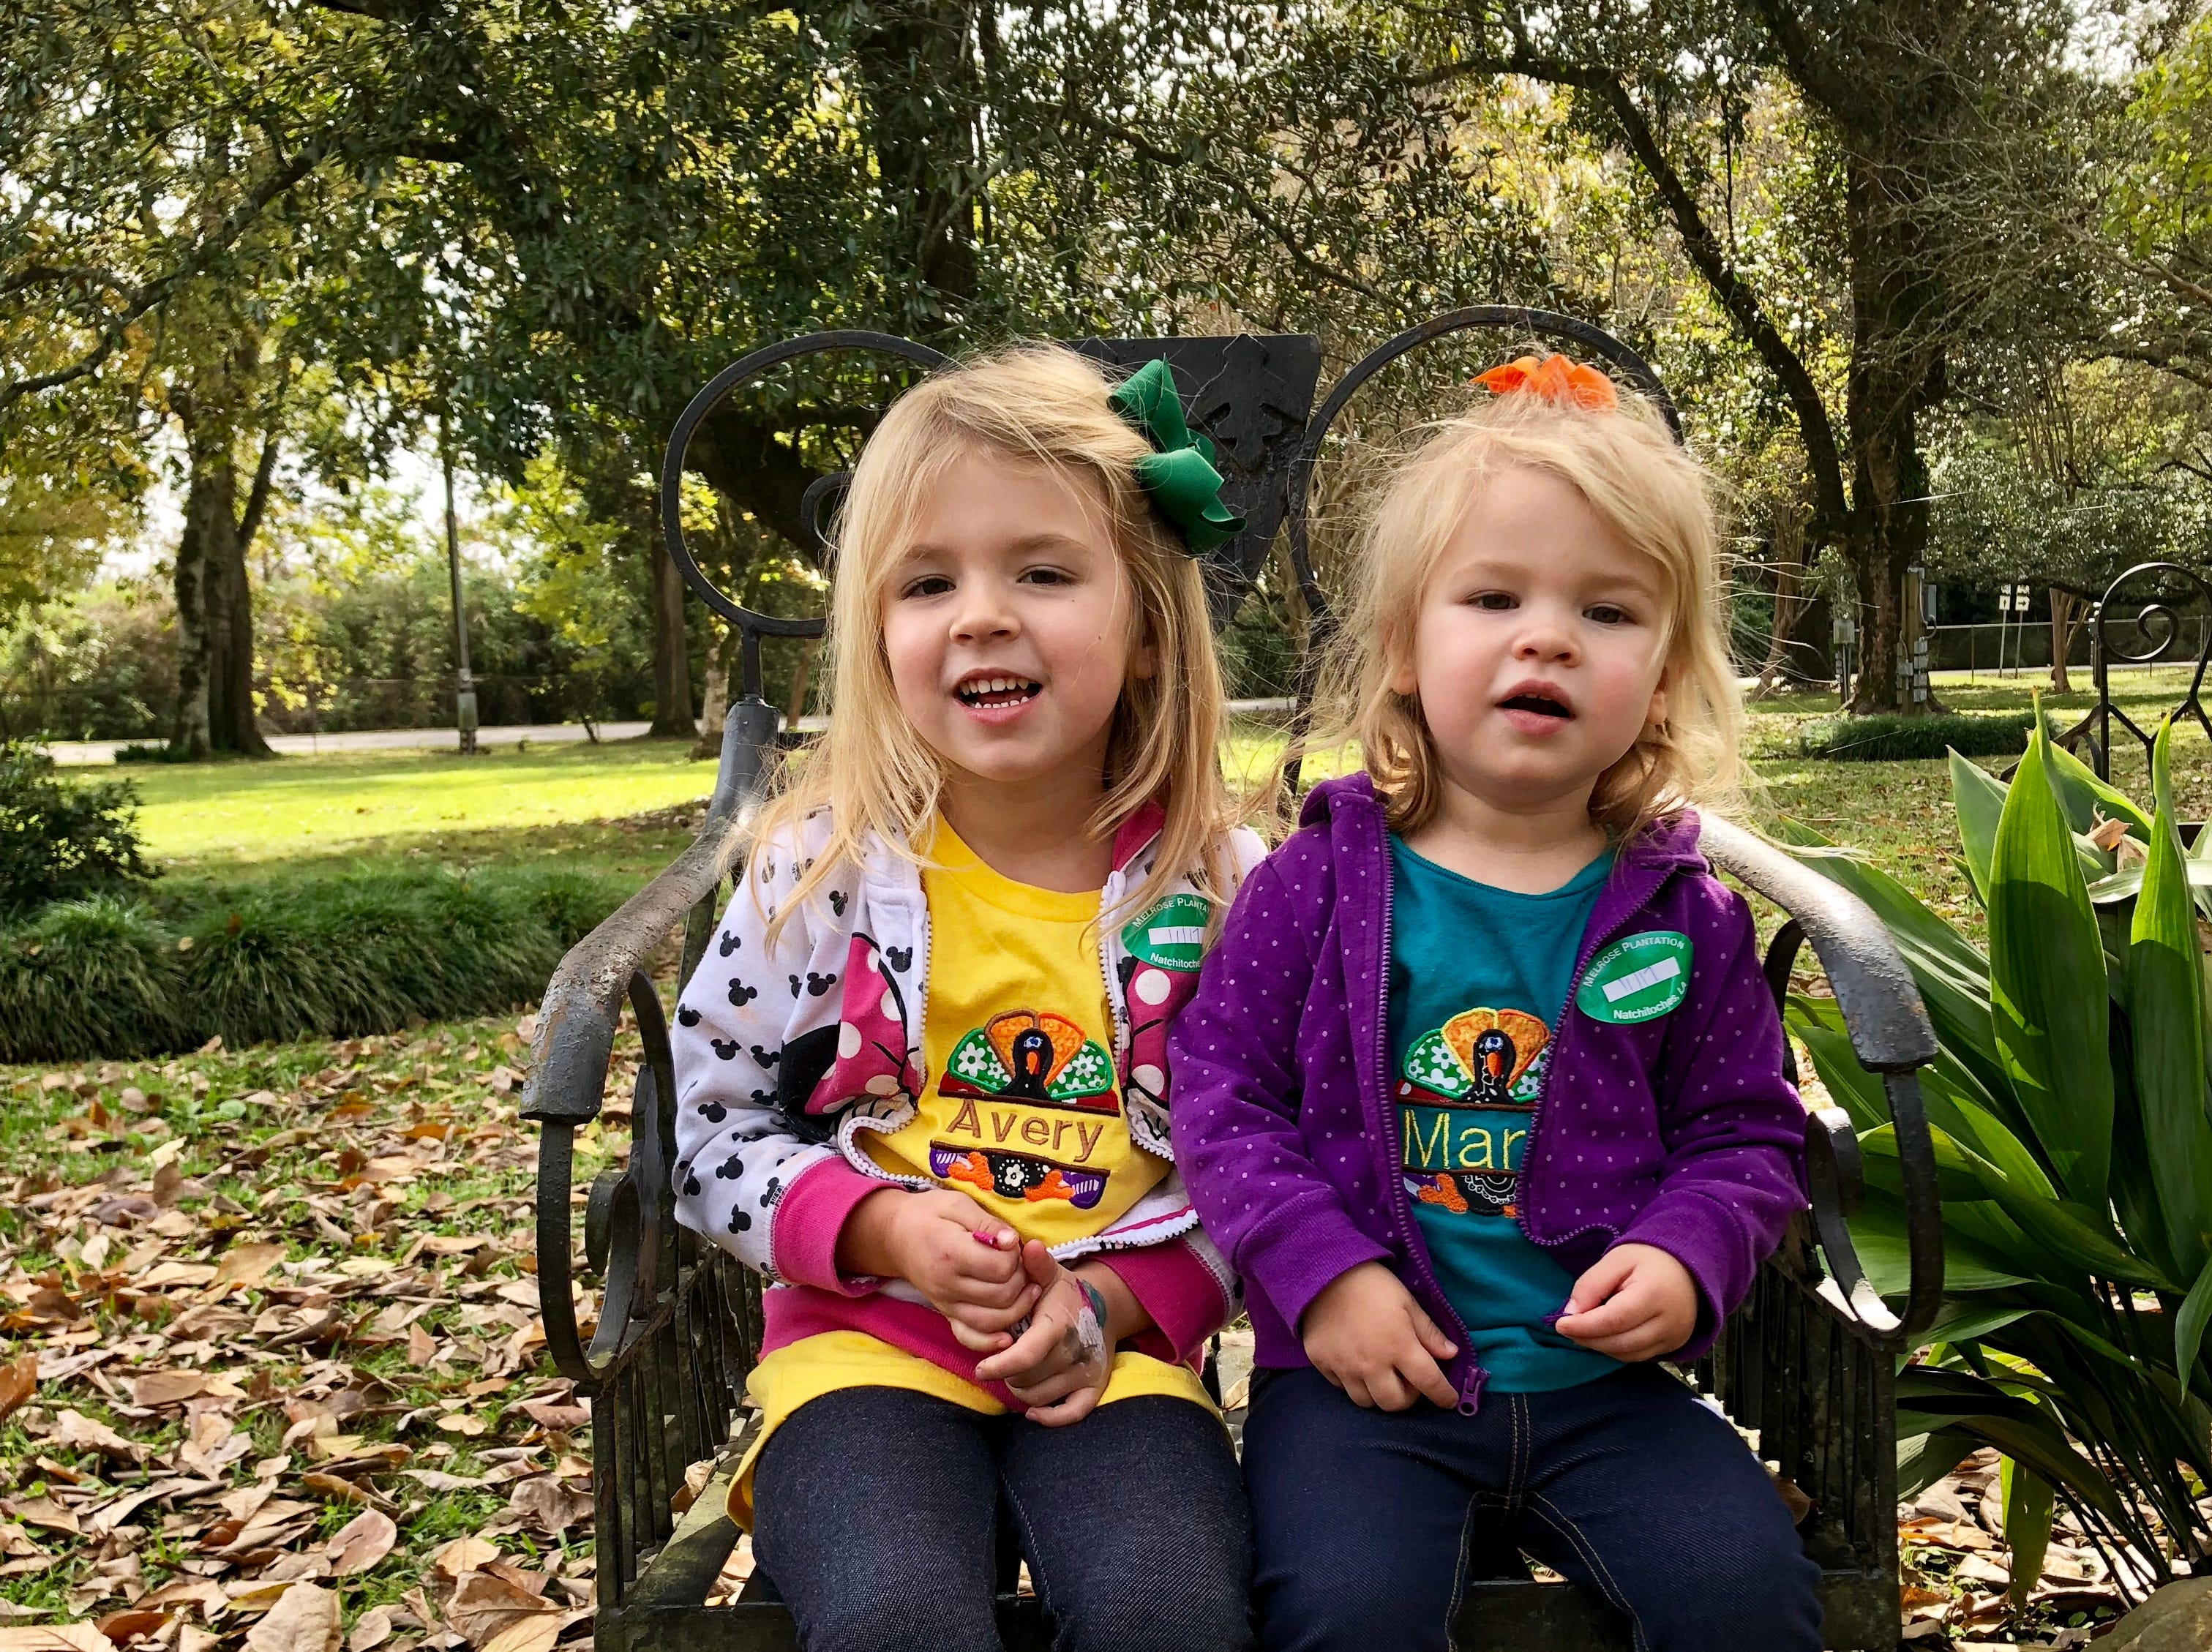 Sisters Avery and Marie Guidry tour Melrose Plantation in Cloutierville during a family trip along the Cane River Creole National Heritage Trail on Nov. 17, 2018.